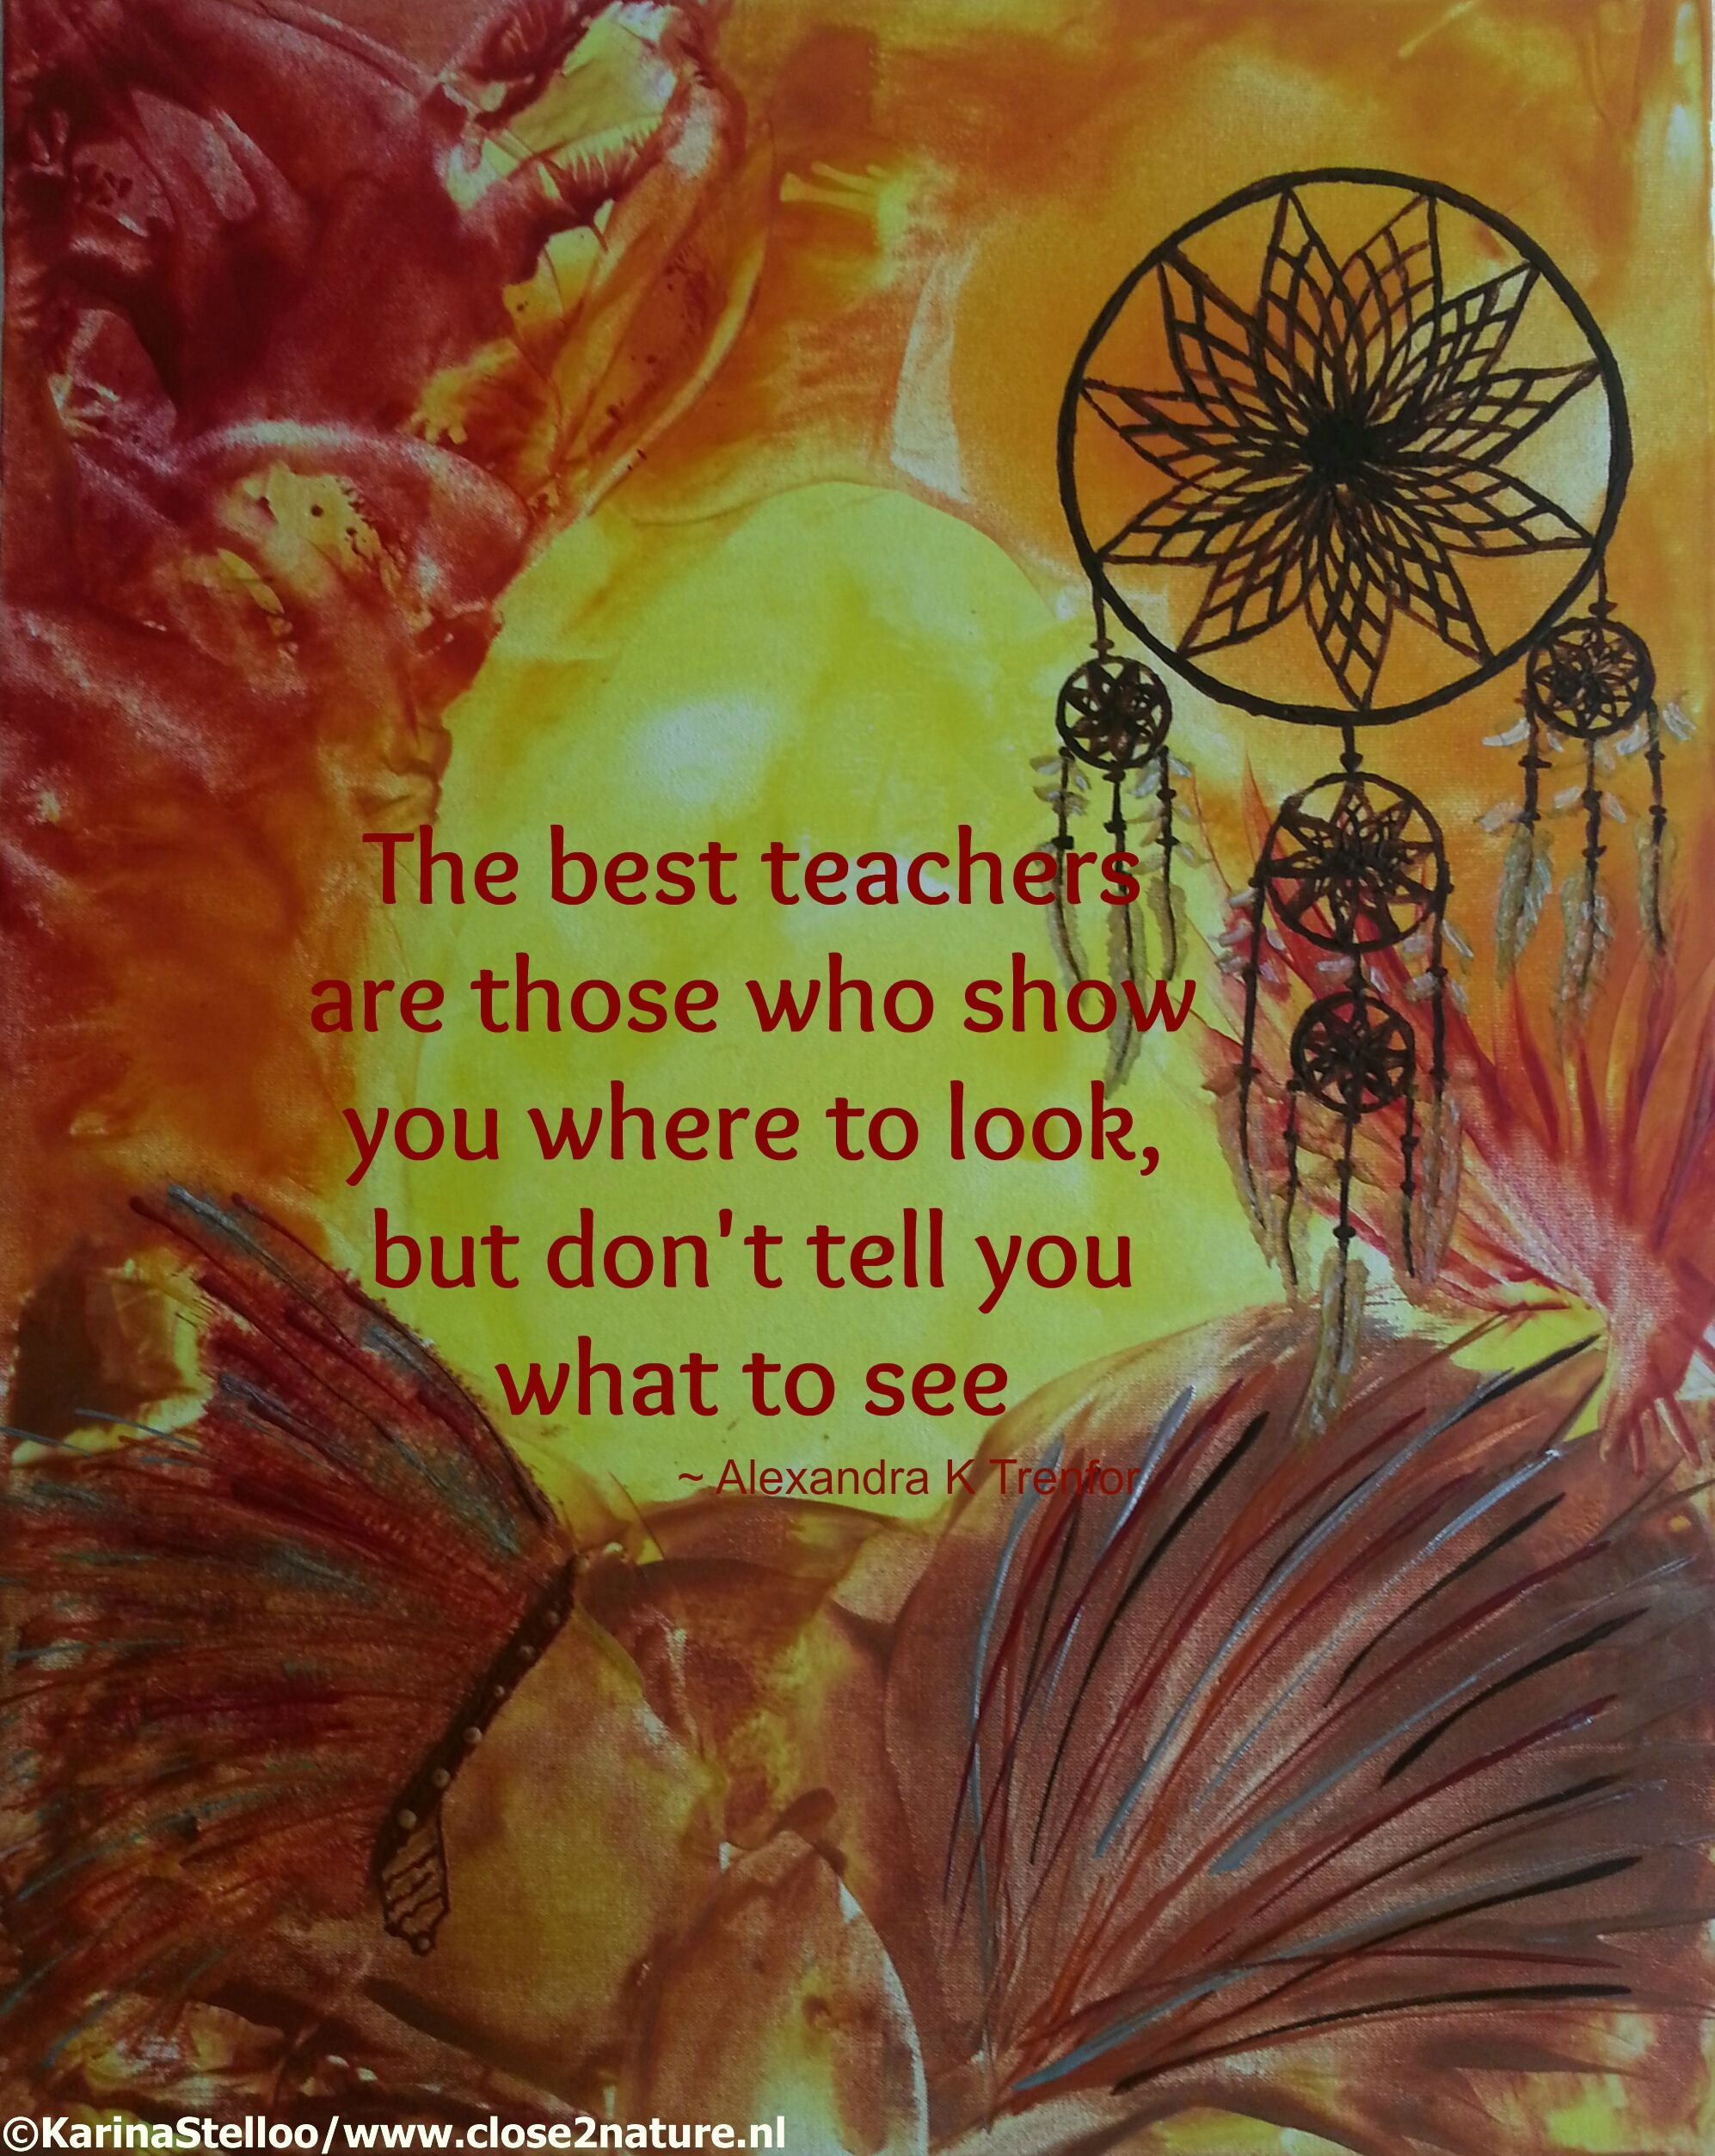 The best teachers are those who show you where to look ...